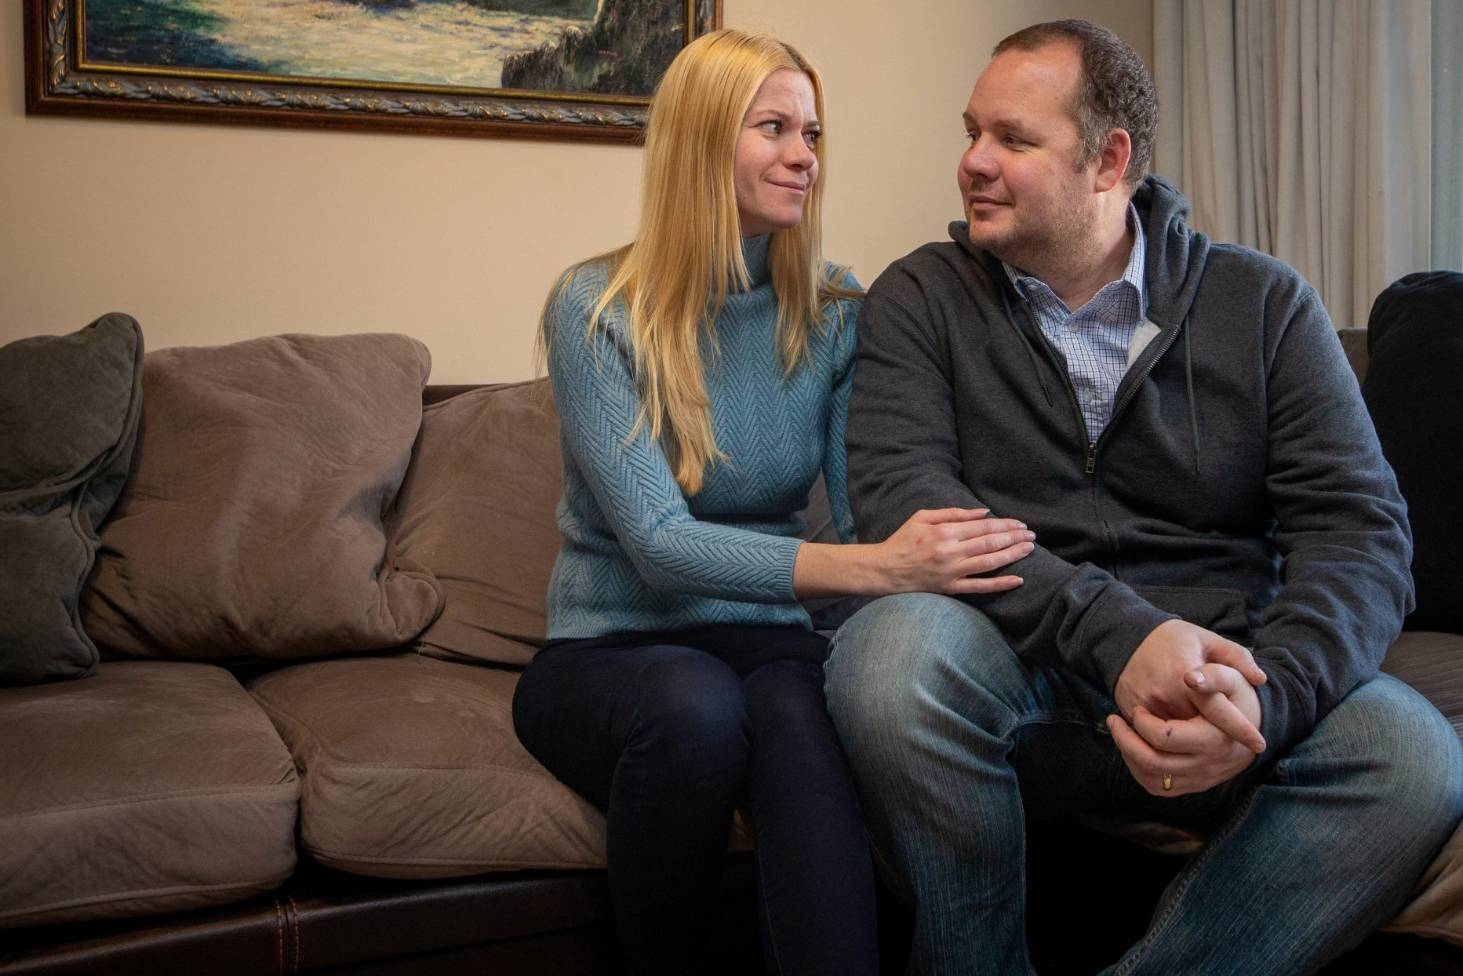 New Zealand couples concerned for planet choose childless futures